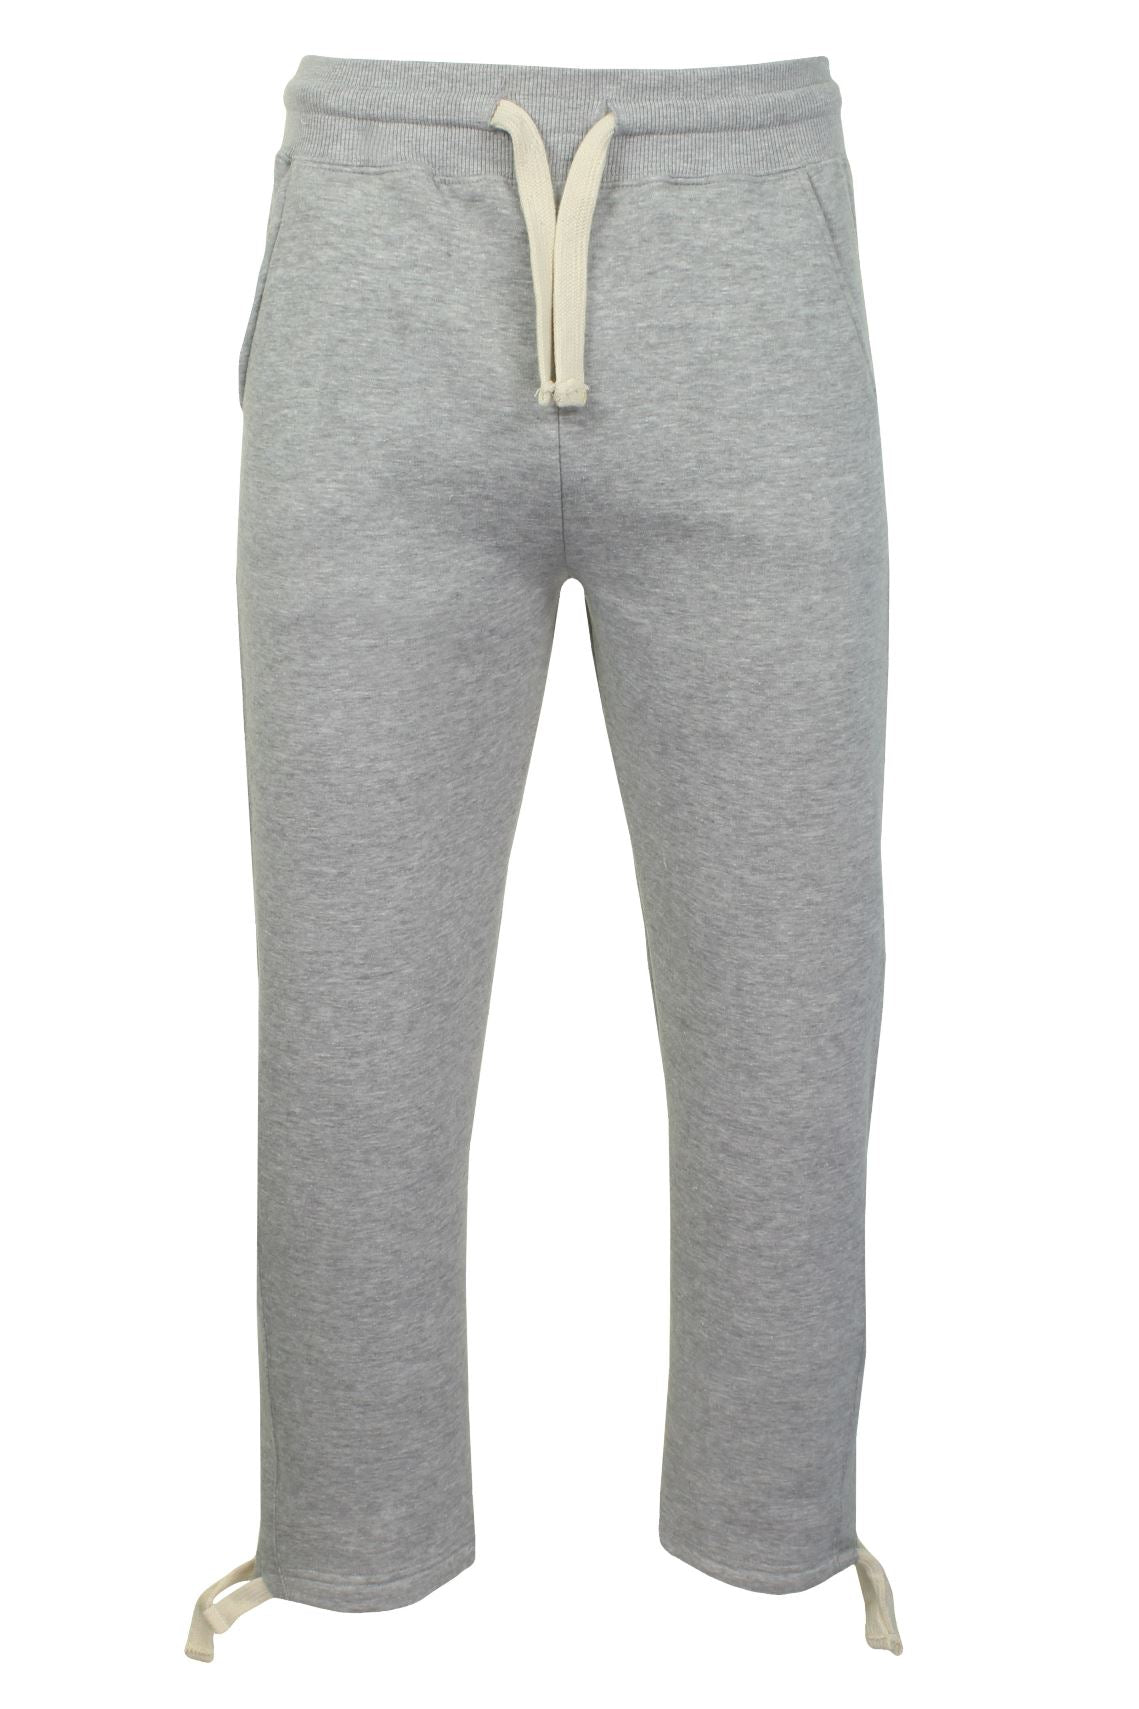 Xact Men's Casual Gym Jogger Lounge Wear, 01, Xjg-0005, #colour_Light Grey